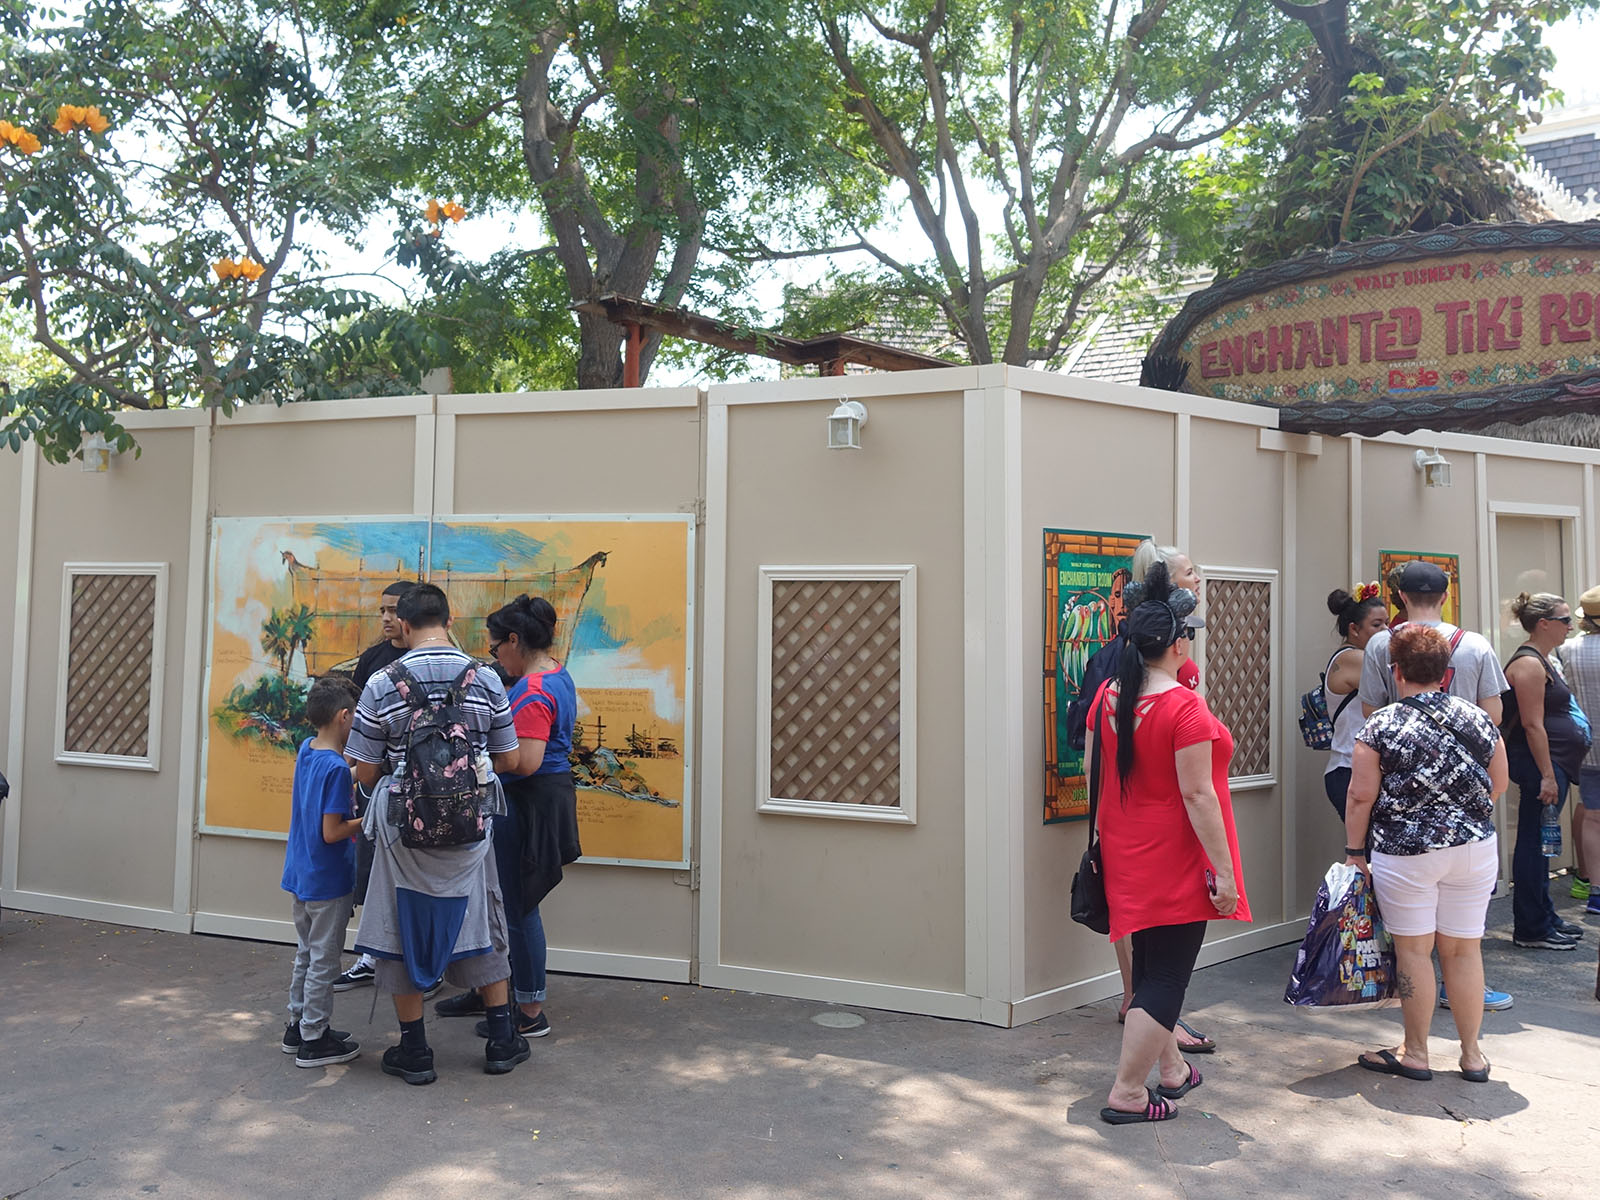 Work Walls Surround A Portion Of The Enchanted Tiki Room